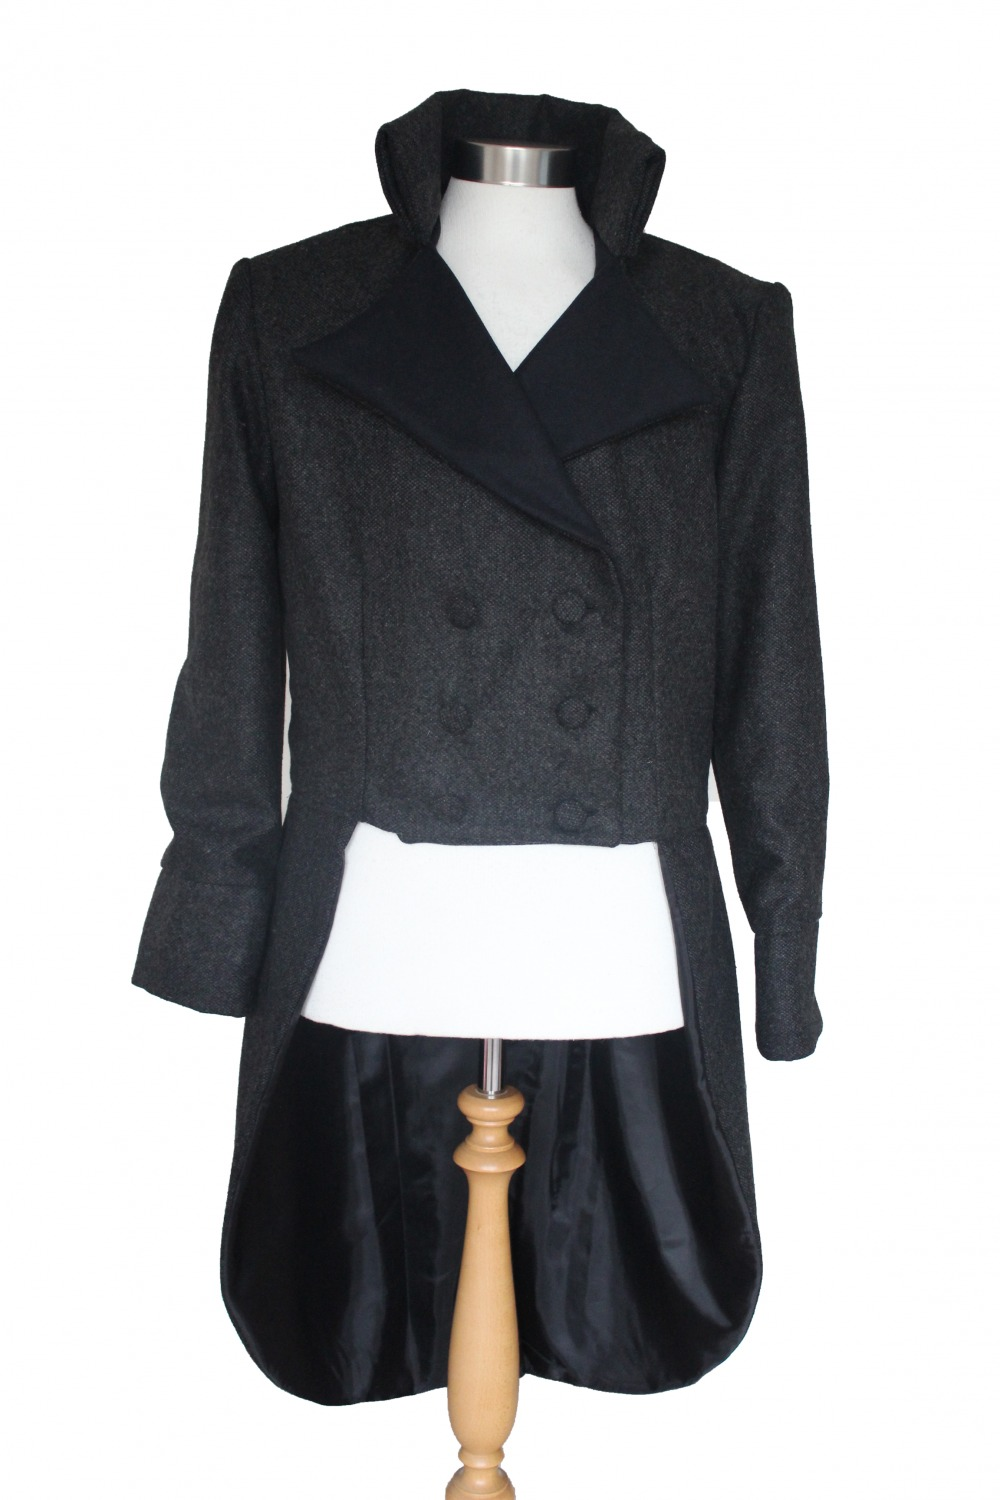 For Sale Made To Order Men's Handmade Woolen Deluxe Mr.Darcy Regency Victorian Tailcoat Made To Order XS, S, M, L, XL Image